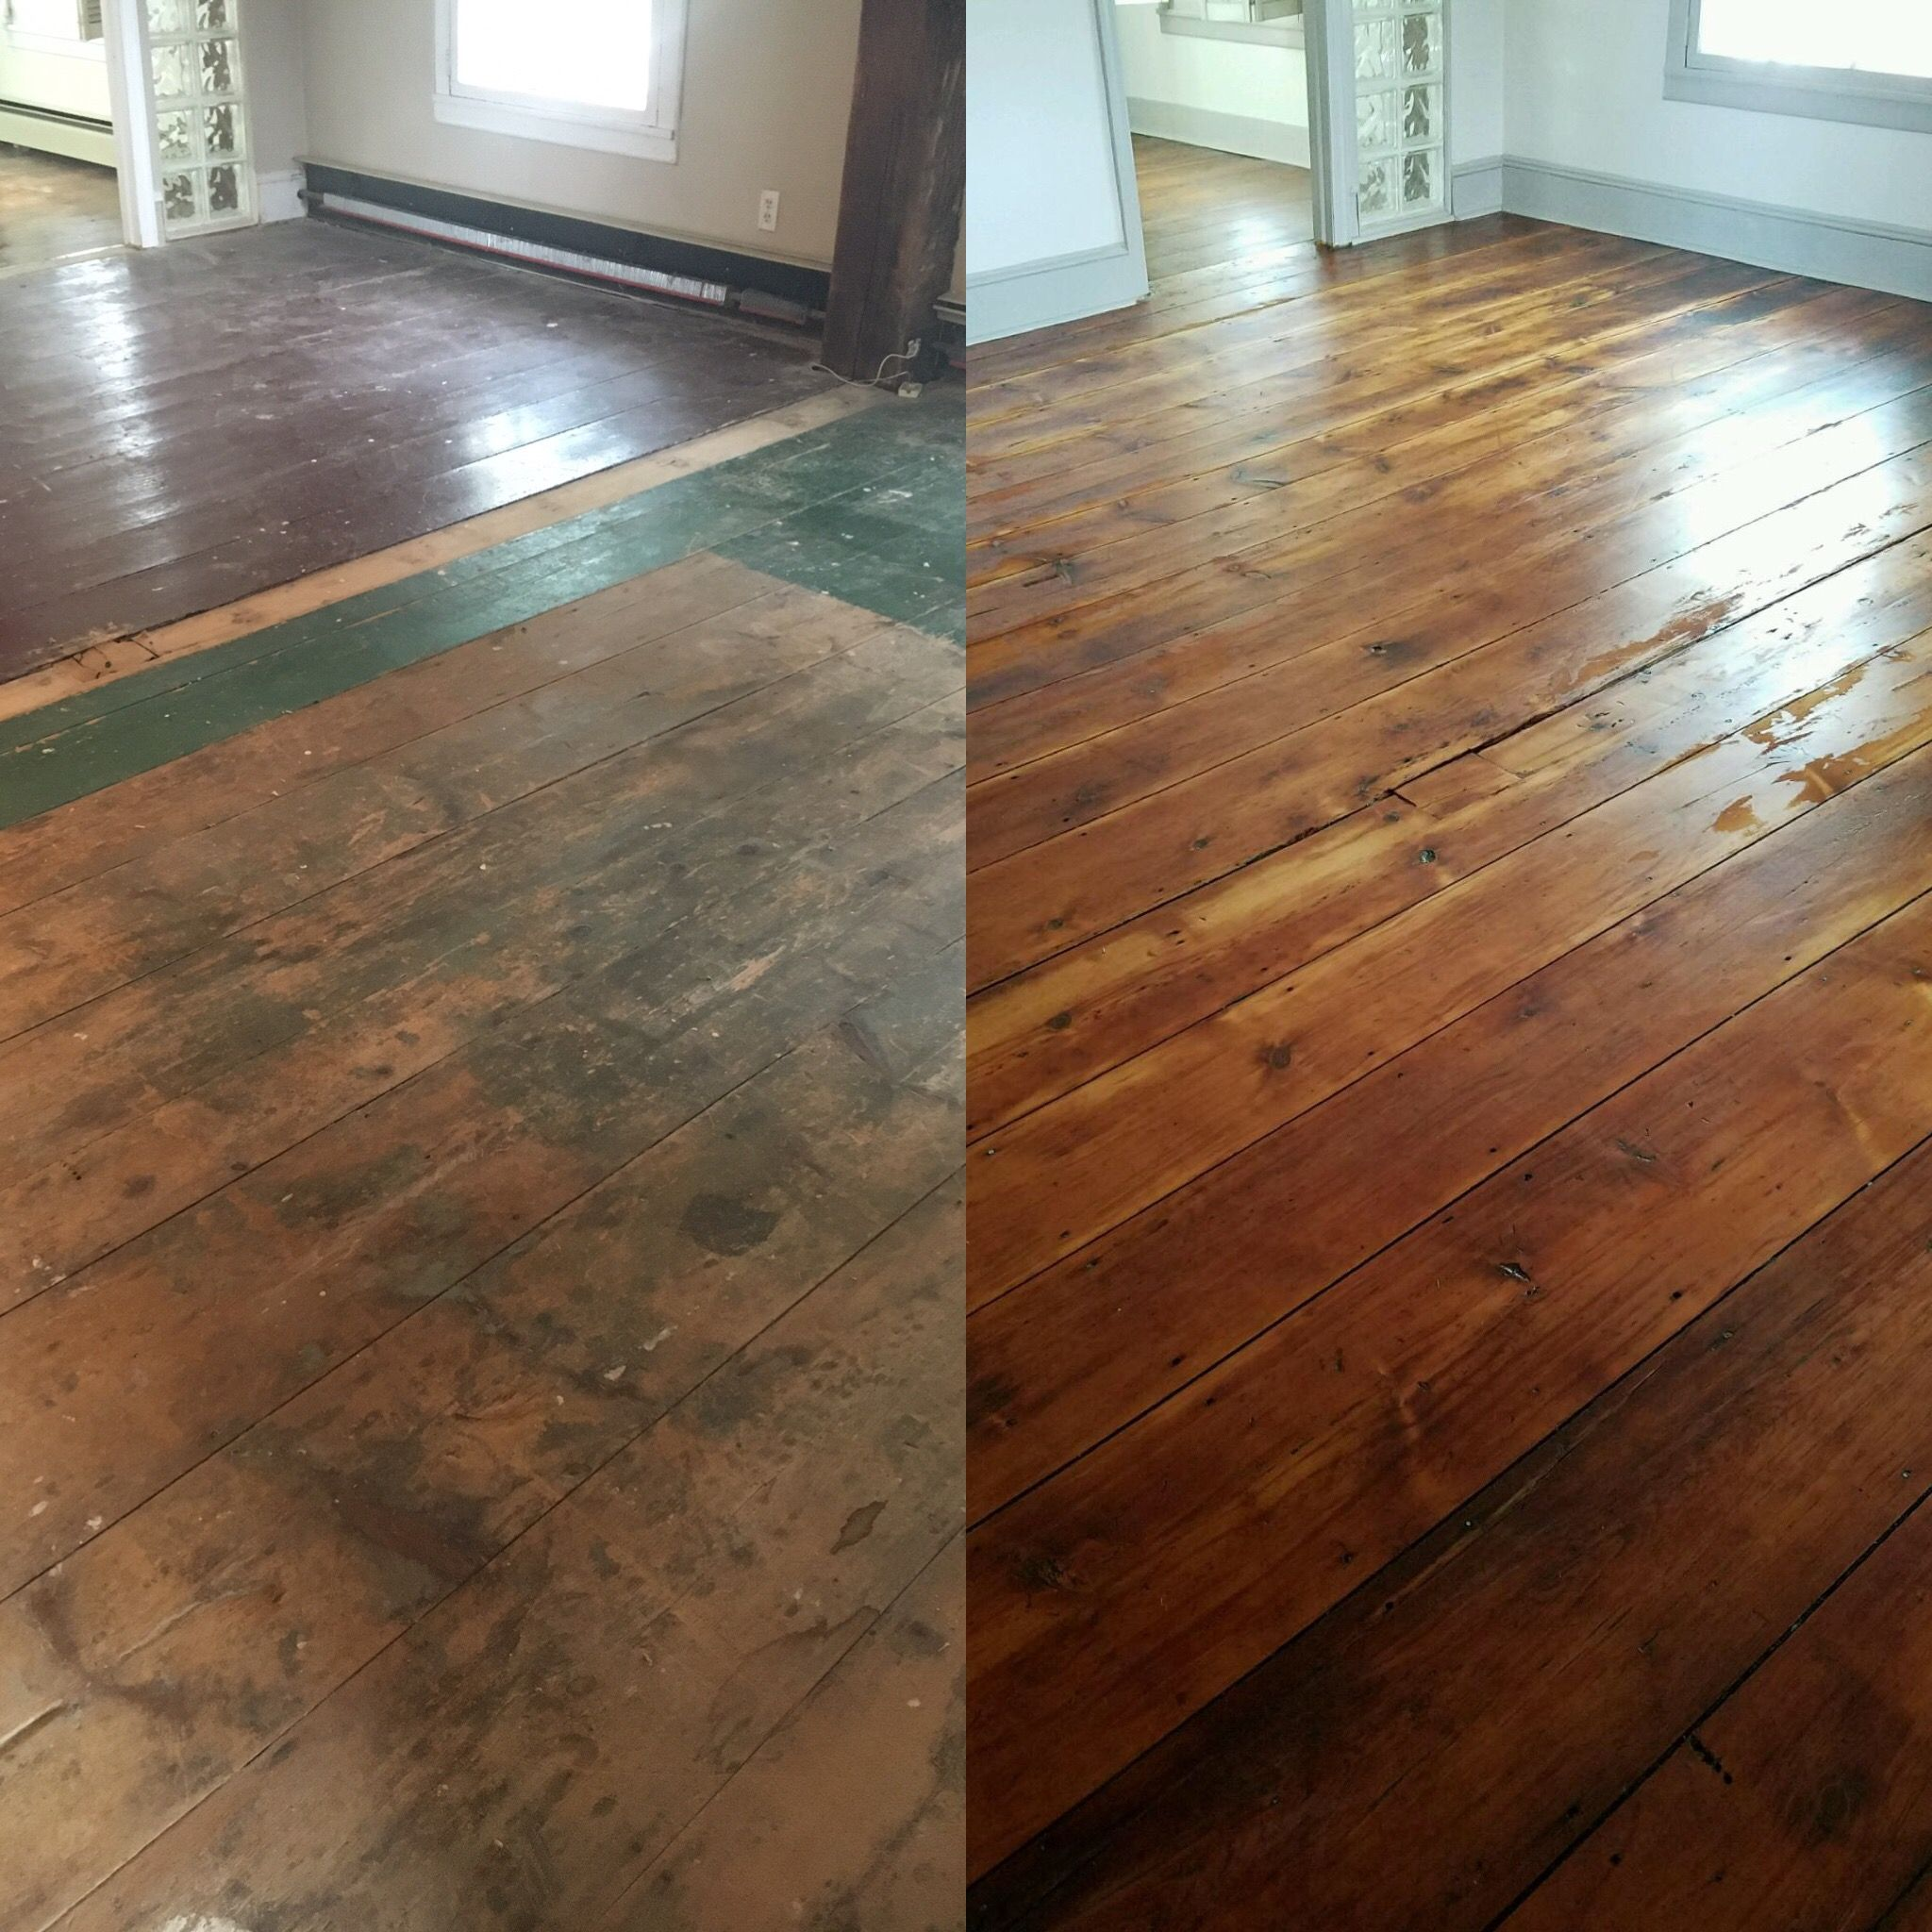 Original wood floors pumpkin pine floors circa 1840